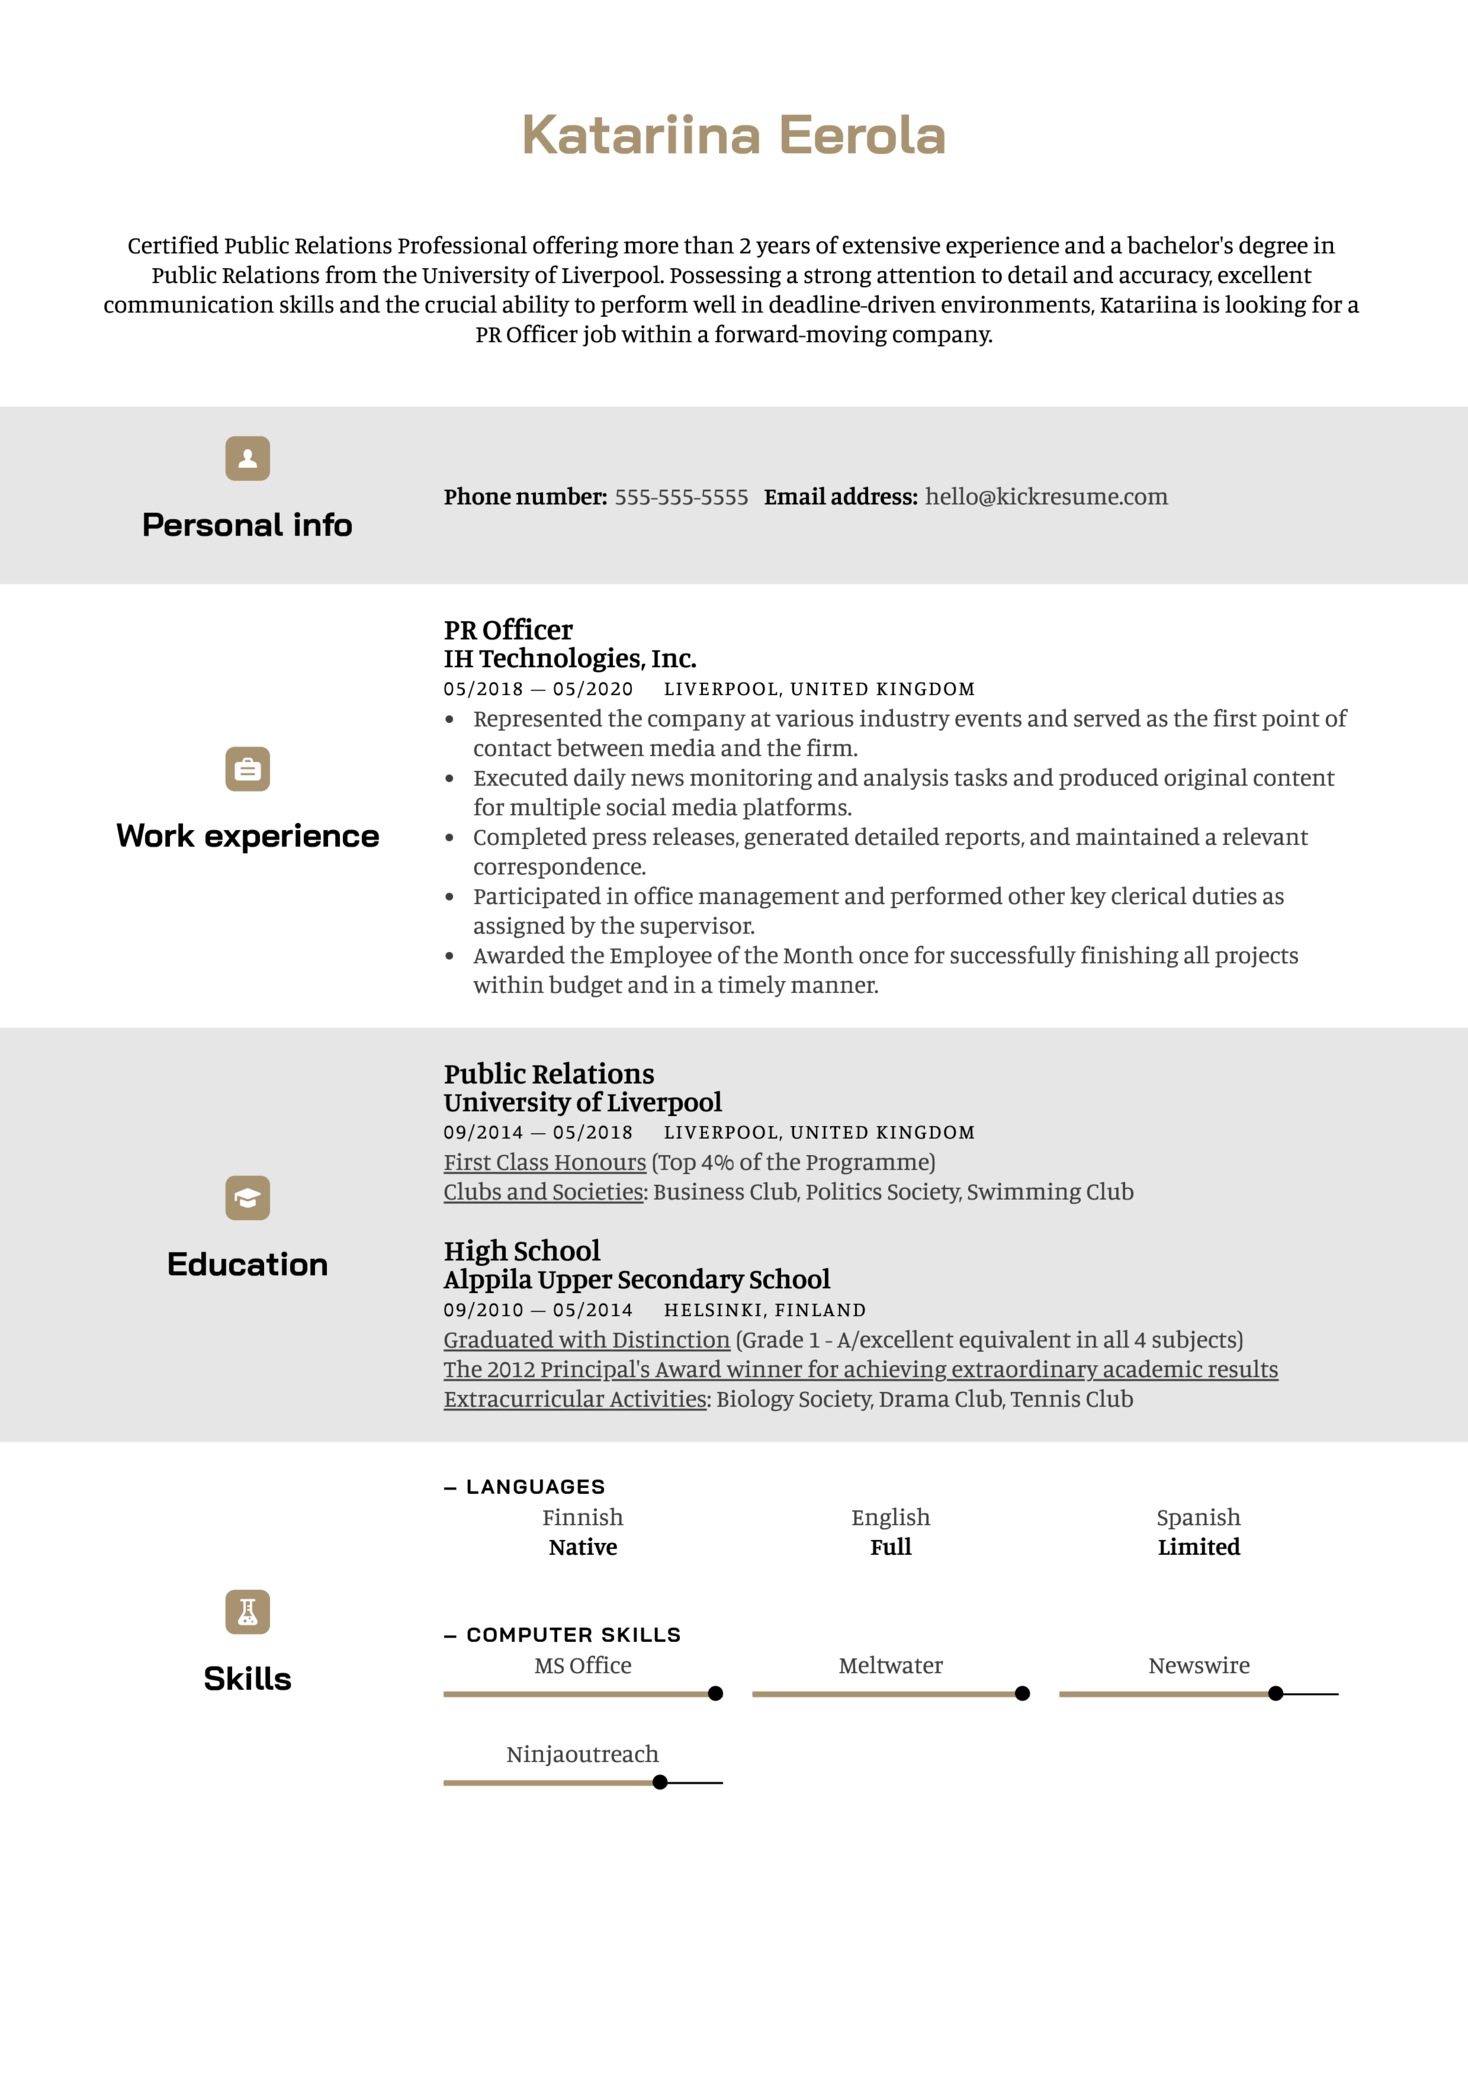 Certificates on Resume Example (parte 1)